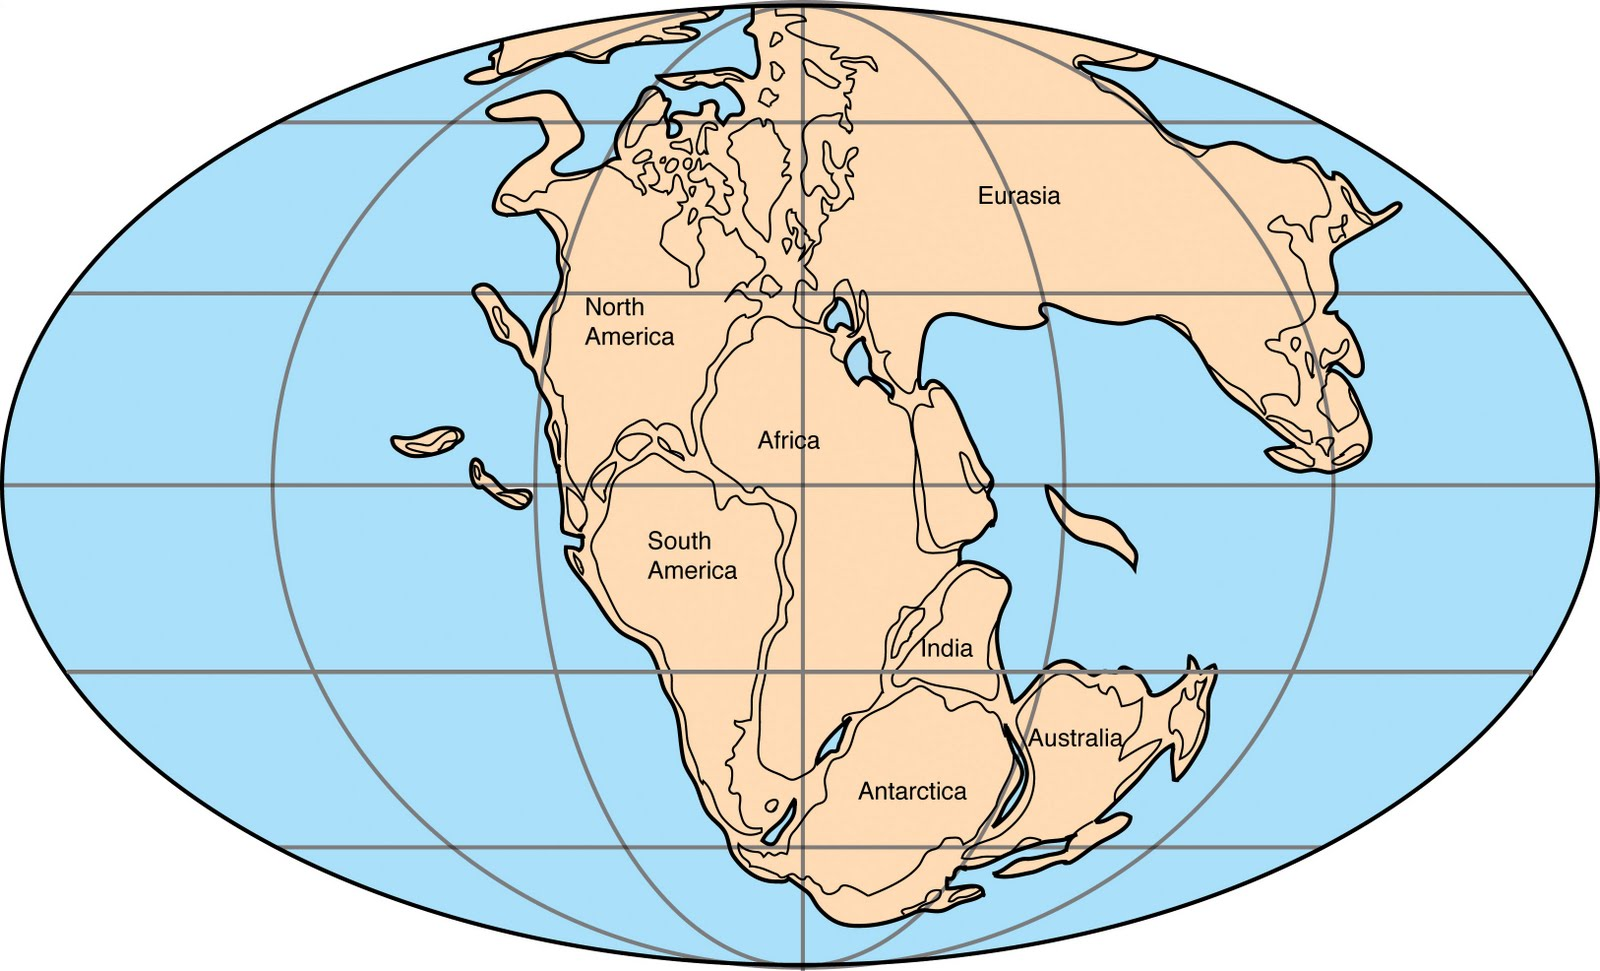 Plate tectonics on emaze all this evidence led wegener to believe that the continents were once connected but had separated and drifted apart gumiabroncs Gallery